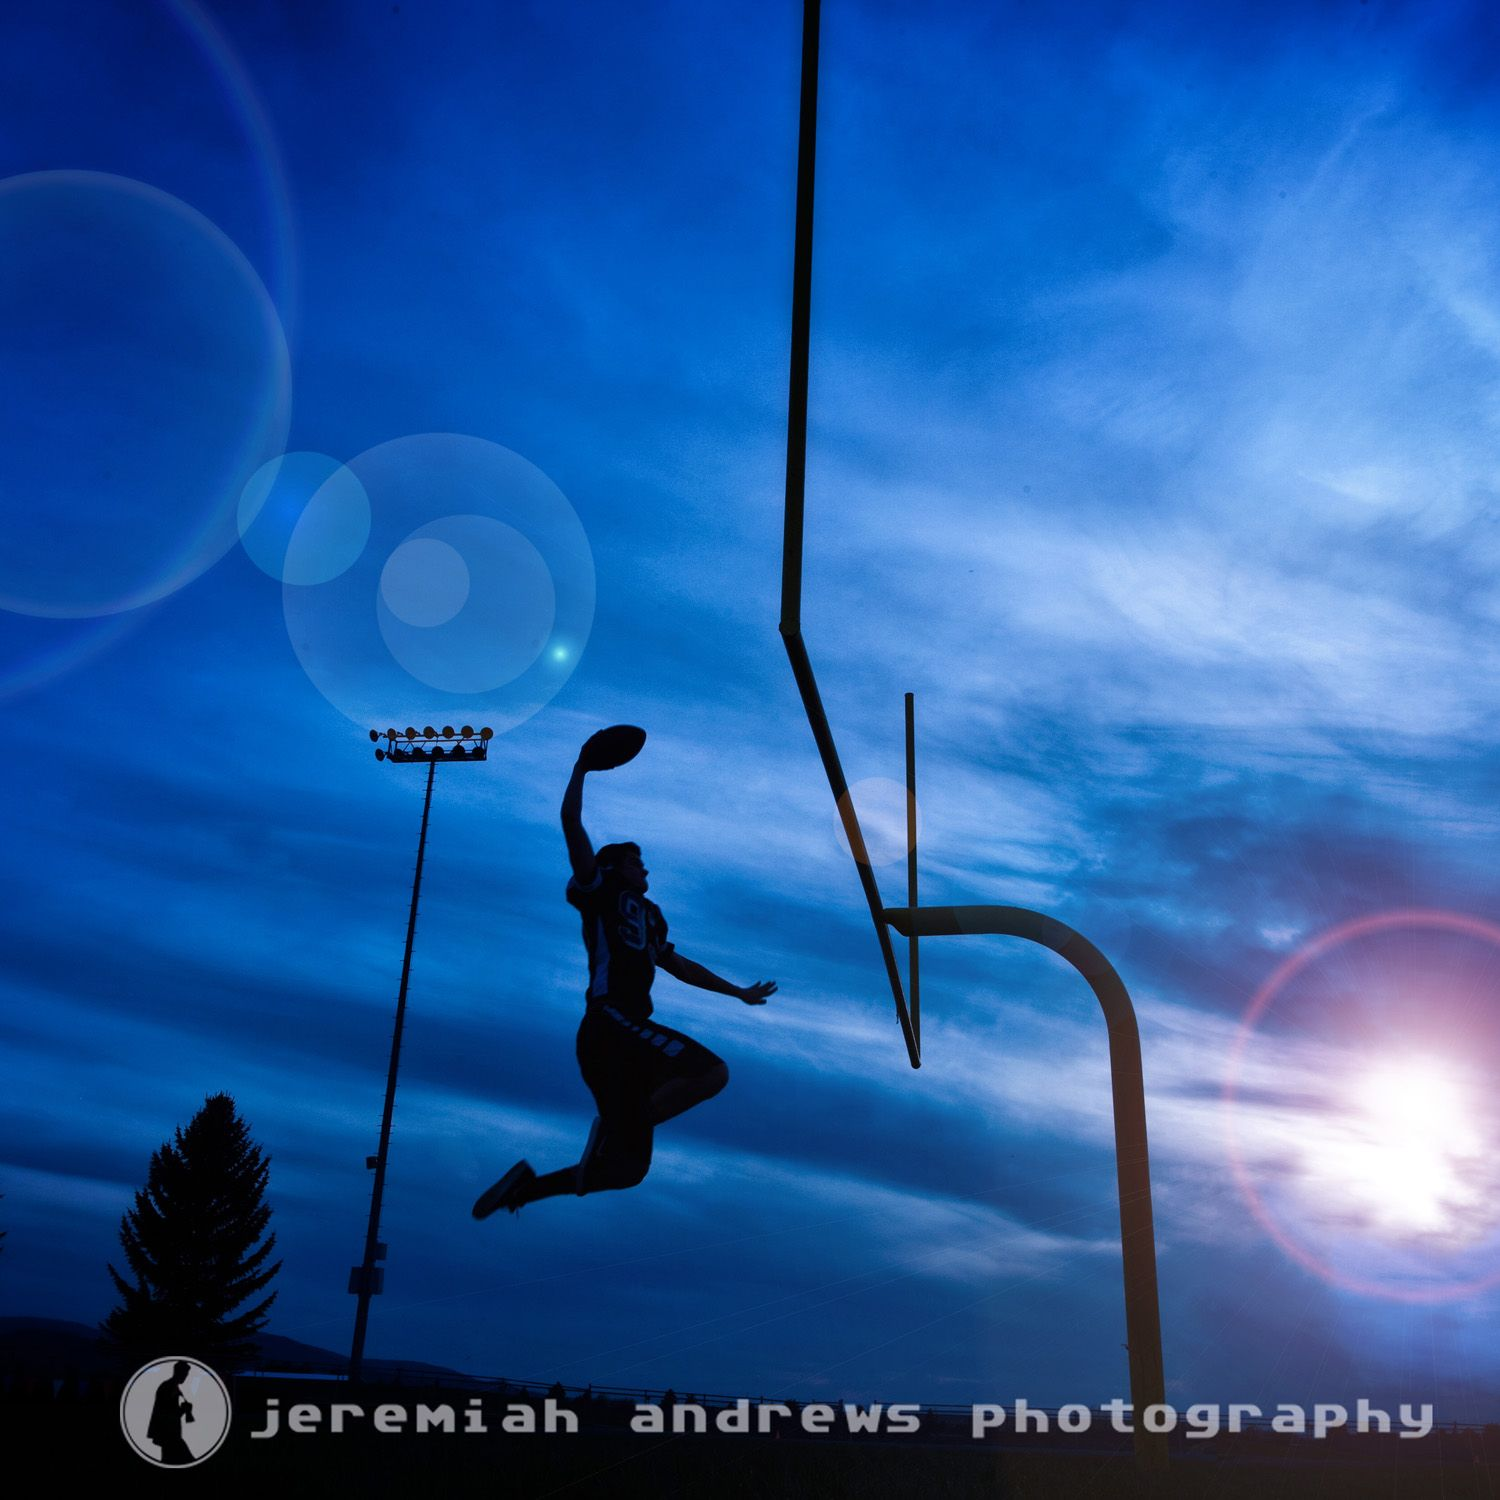 Football senior portraits for Coeur d'Alene High School Senior, Outside the box Senior Photo by Jeremiah Andrews Photography http://www.jeremiahandrews.com/image-galleries/high-school-seniors